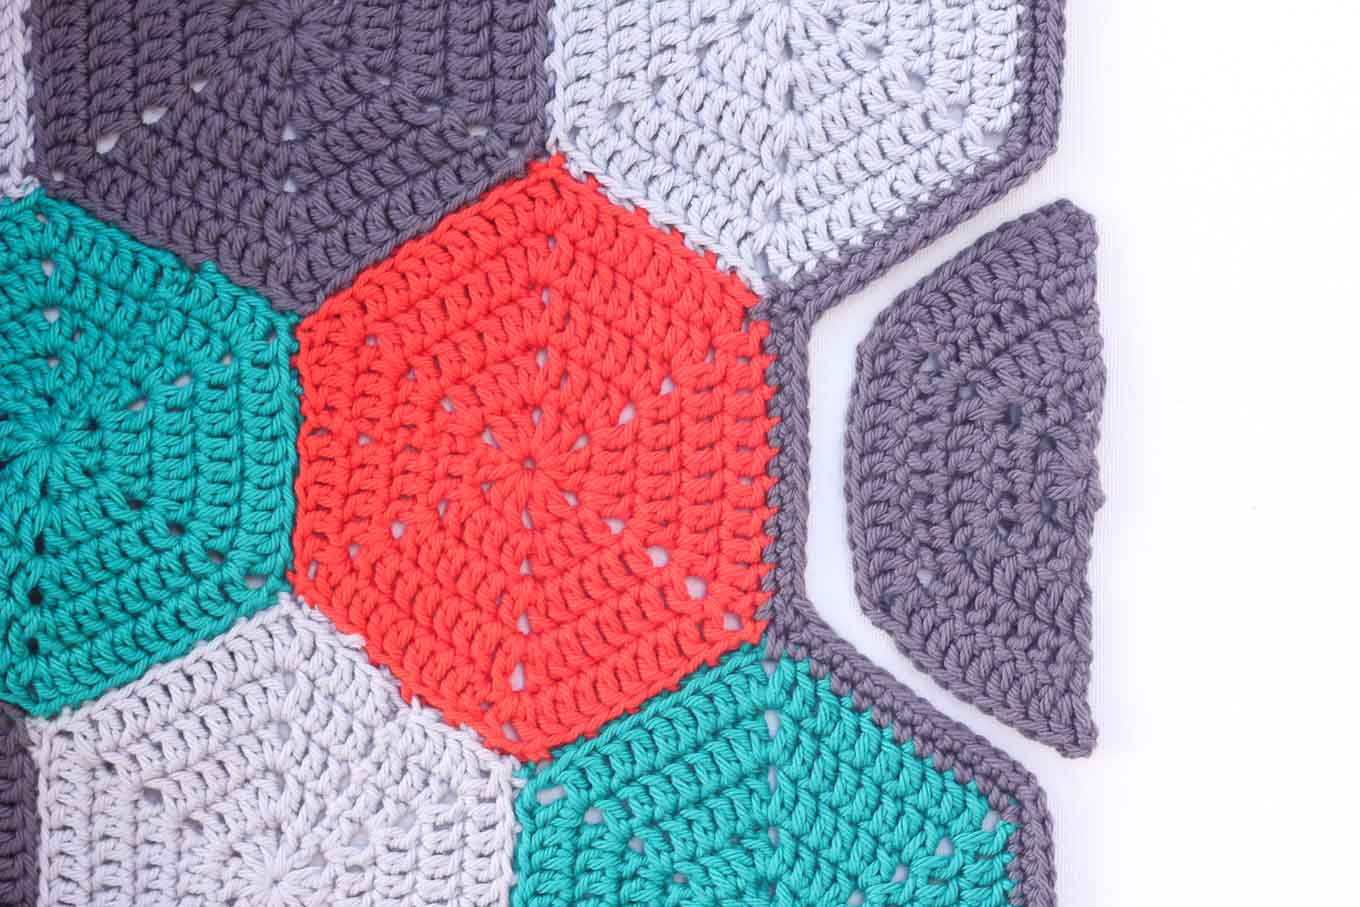 Crocheting Hexagons : Tutorial: How to Crochet a Half Hexagon - Make and Do Crew